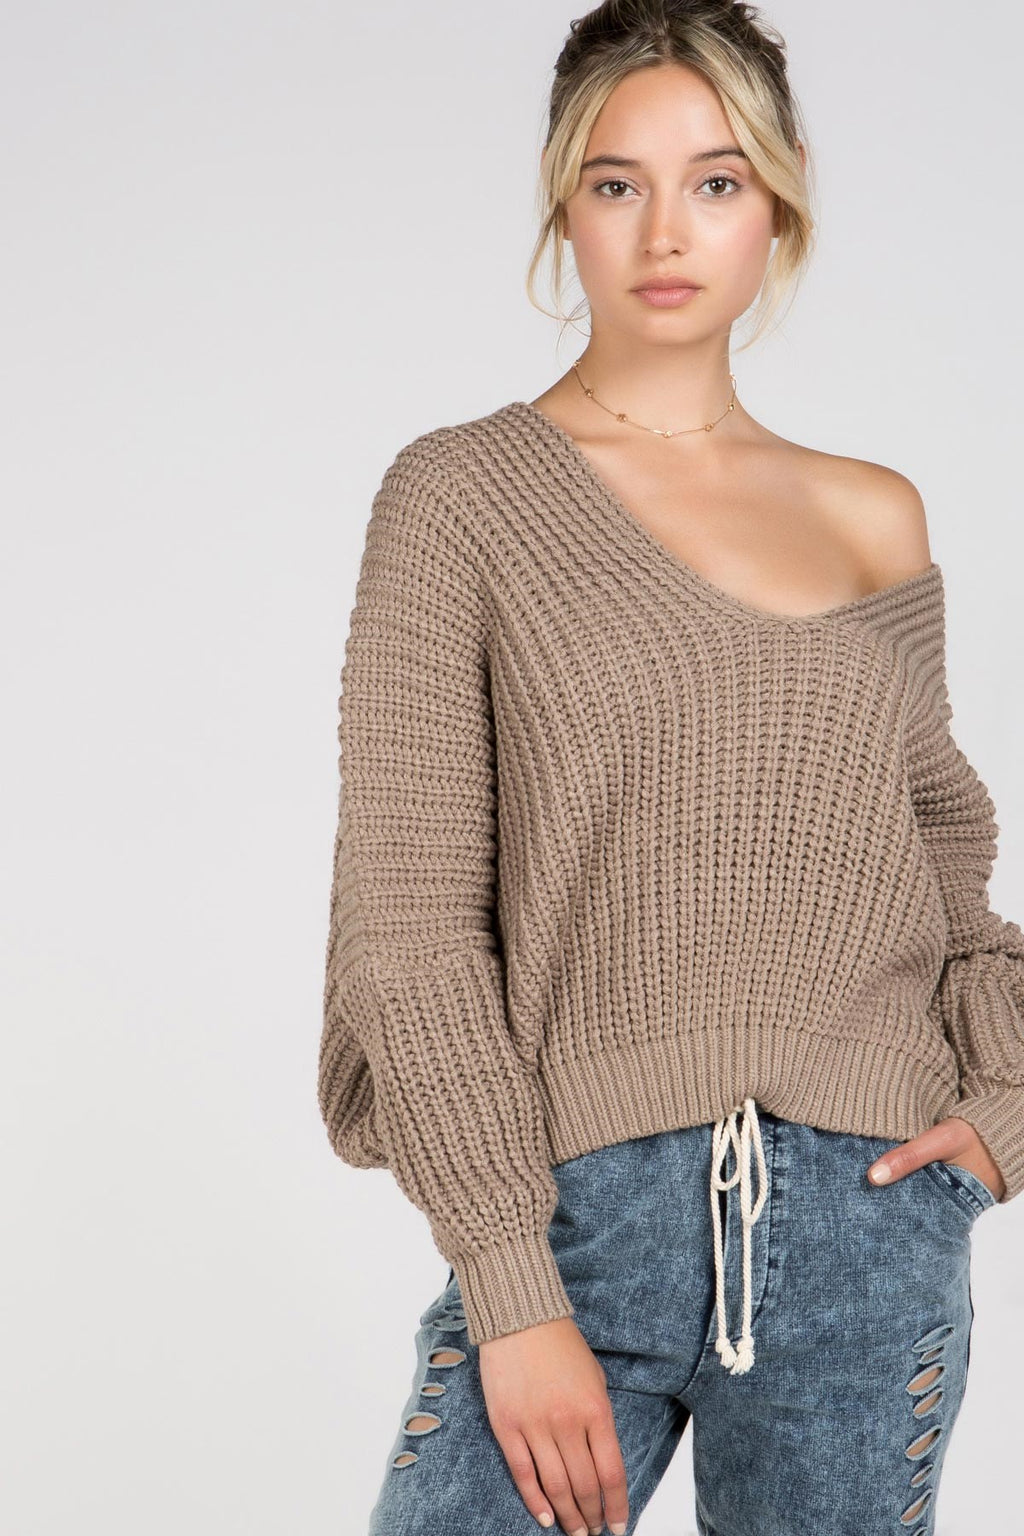 Cocoa - Knit Sweater